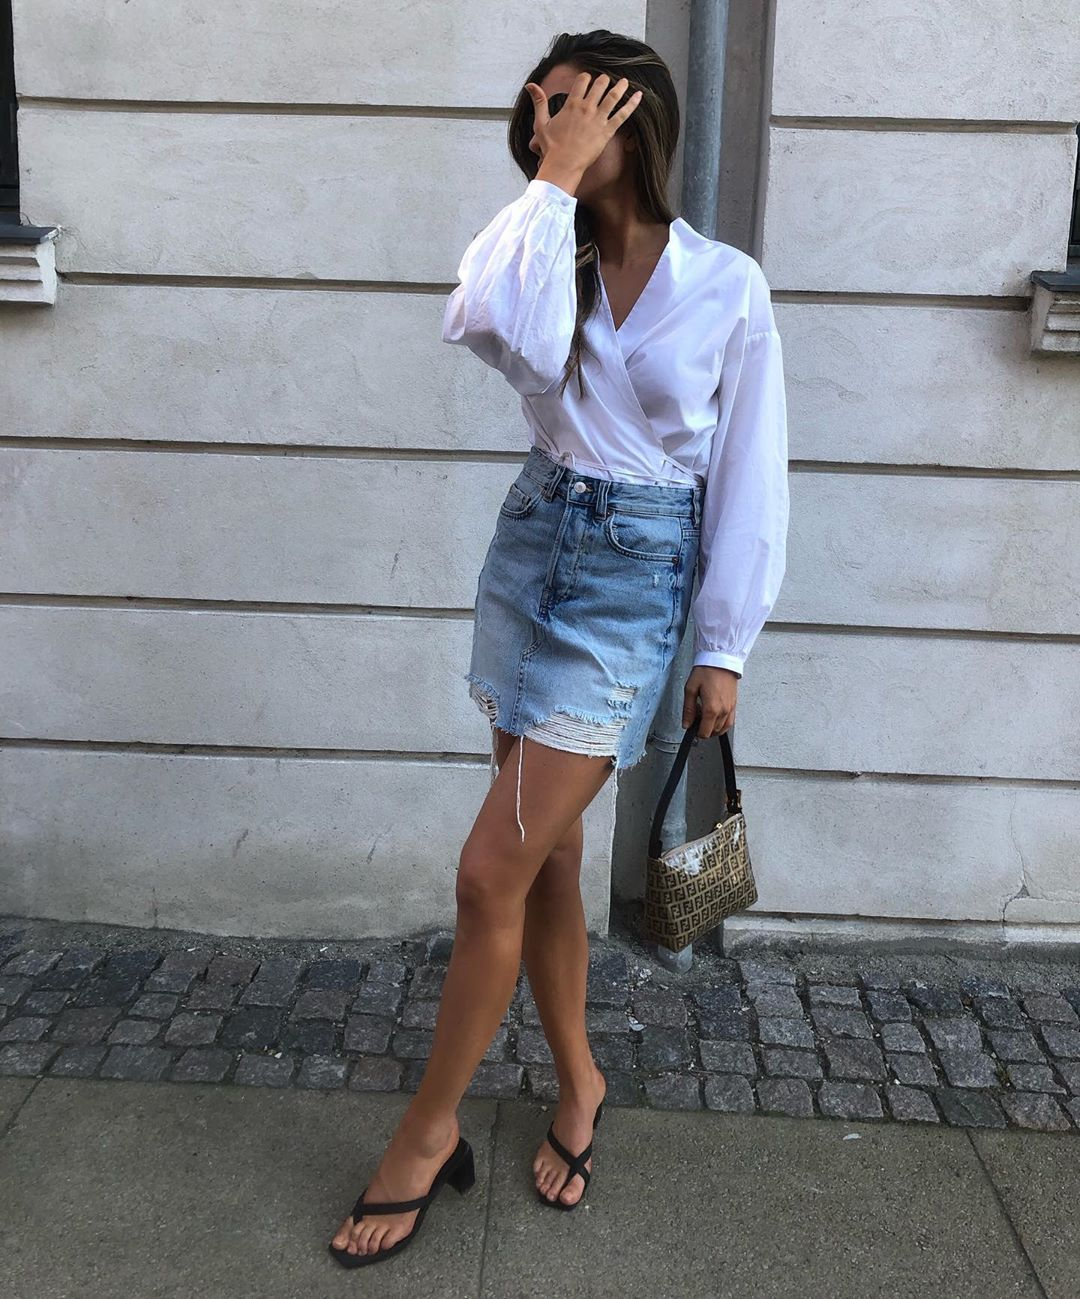 This Denim Skirt Look Is All I Want to Wear This Spring